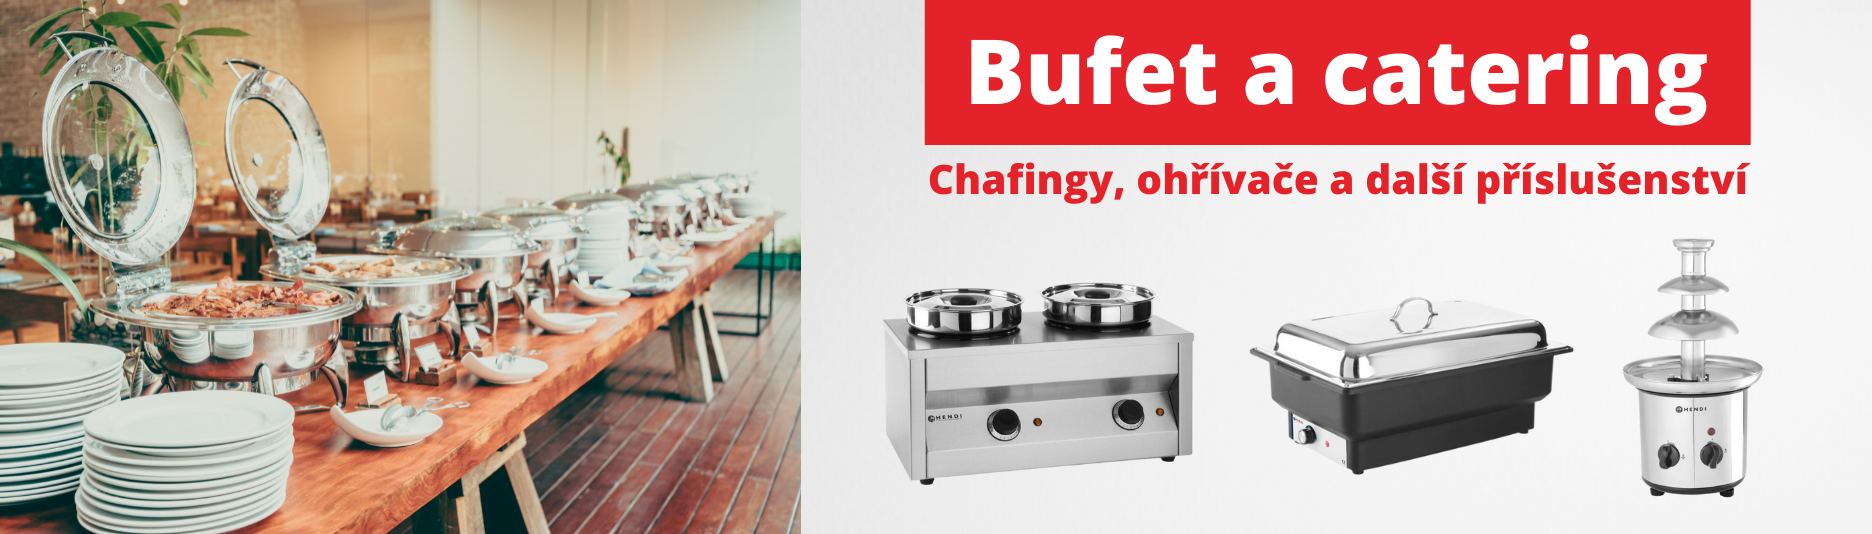 Bufet a catering - chafingy